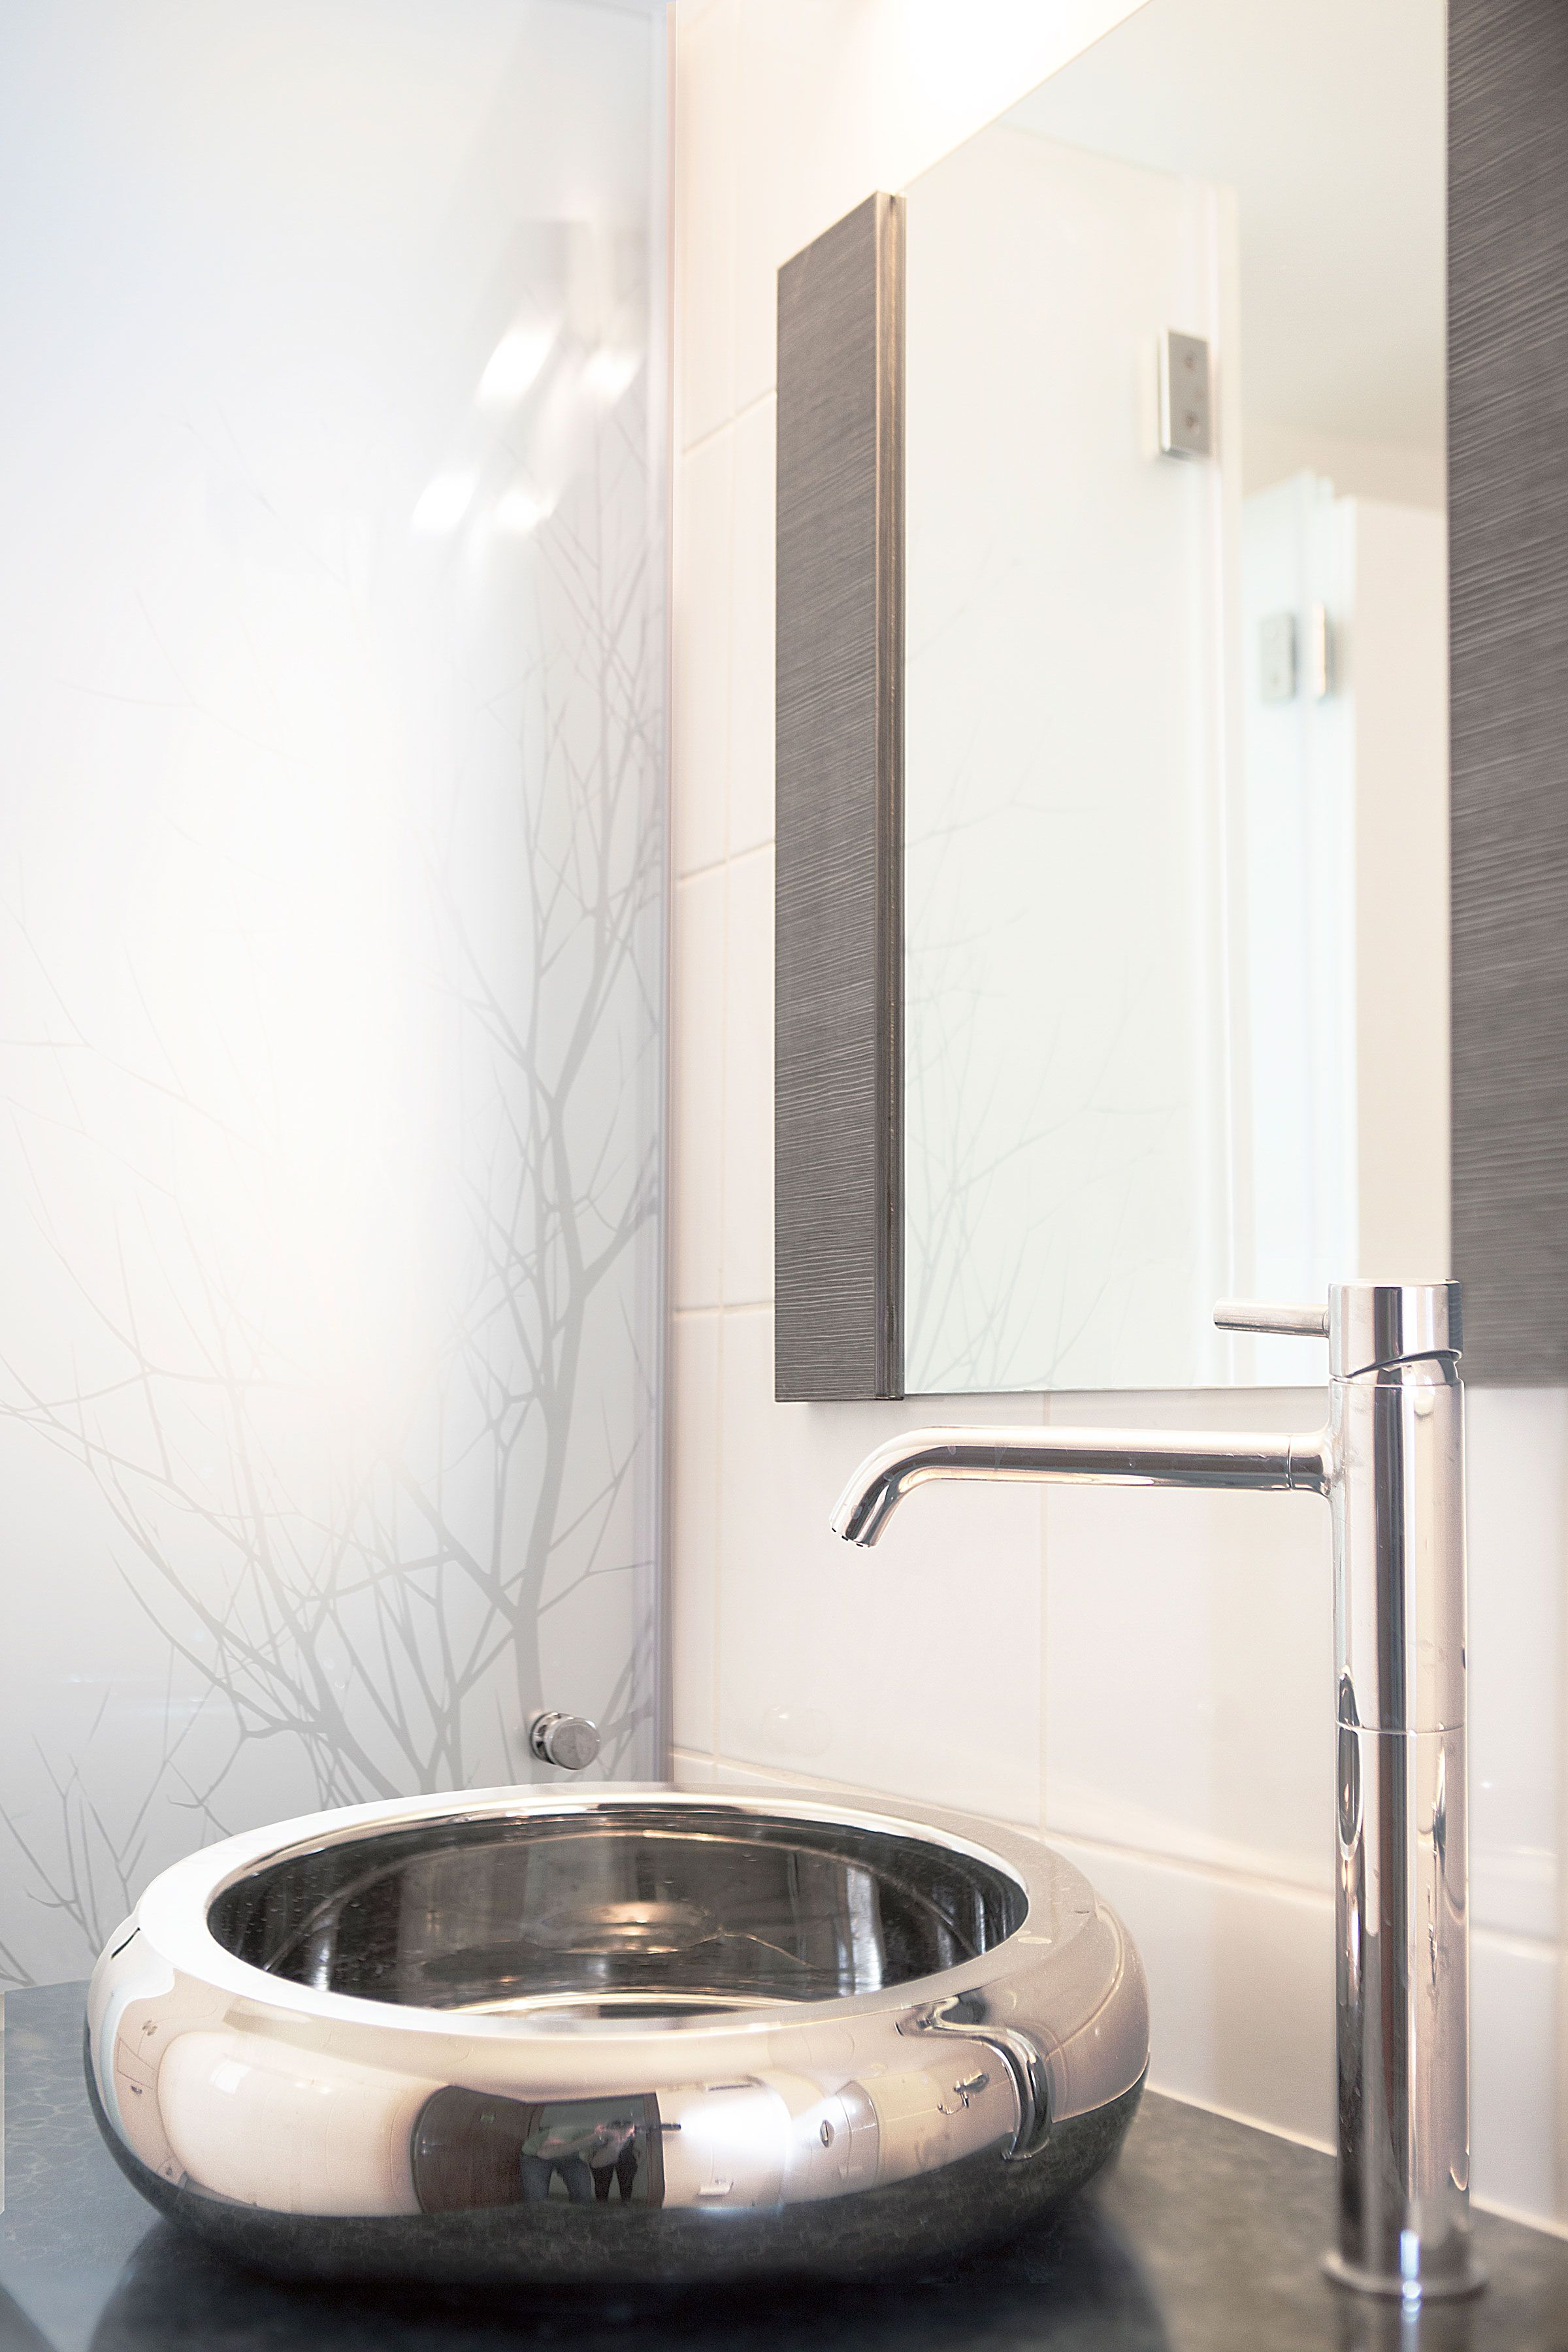 silver sink placed on top of a blue marble in a bathroom design by rh pinterest com marble floor in a bathroom marble tile in a bathroom